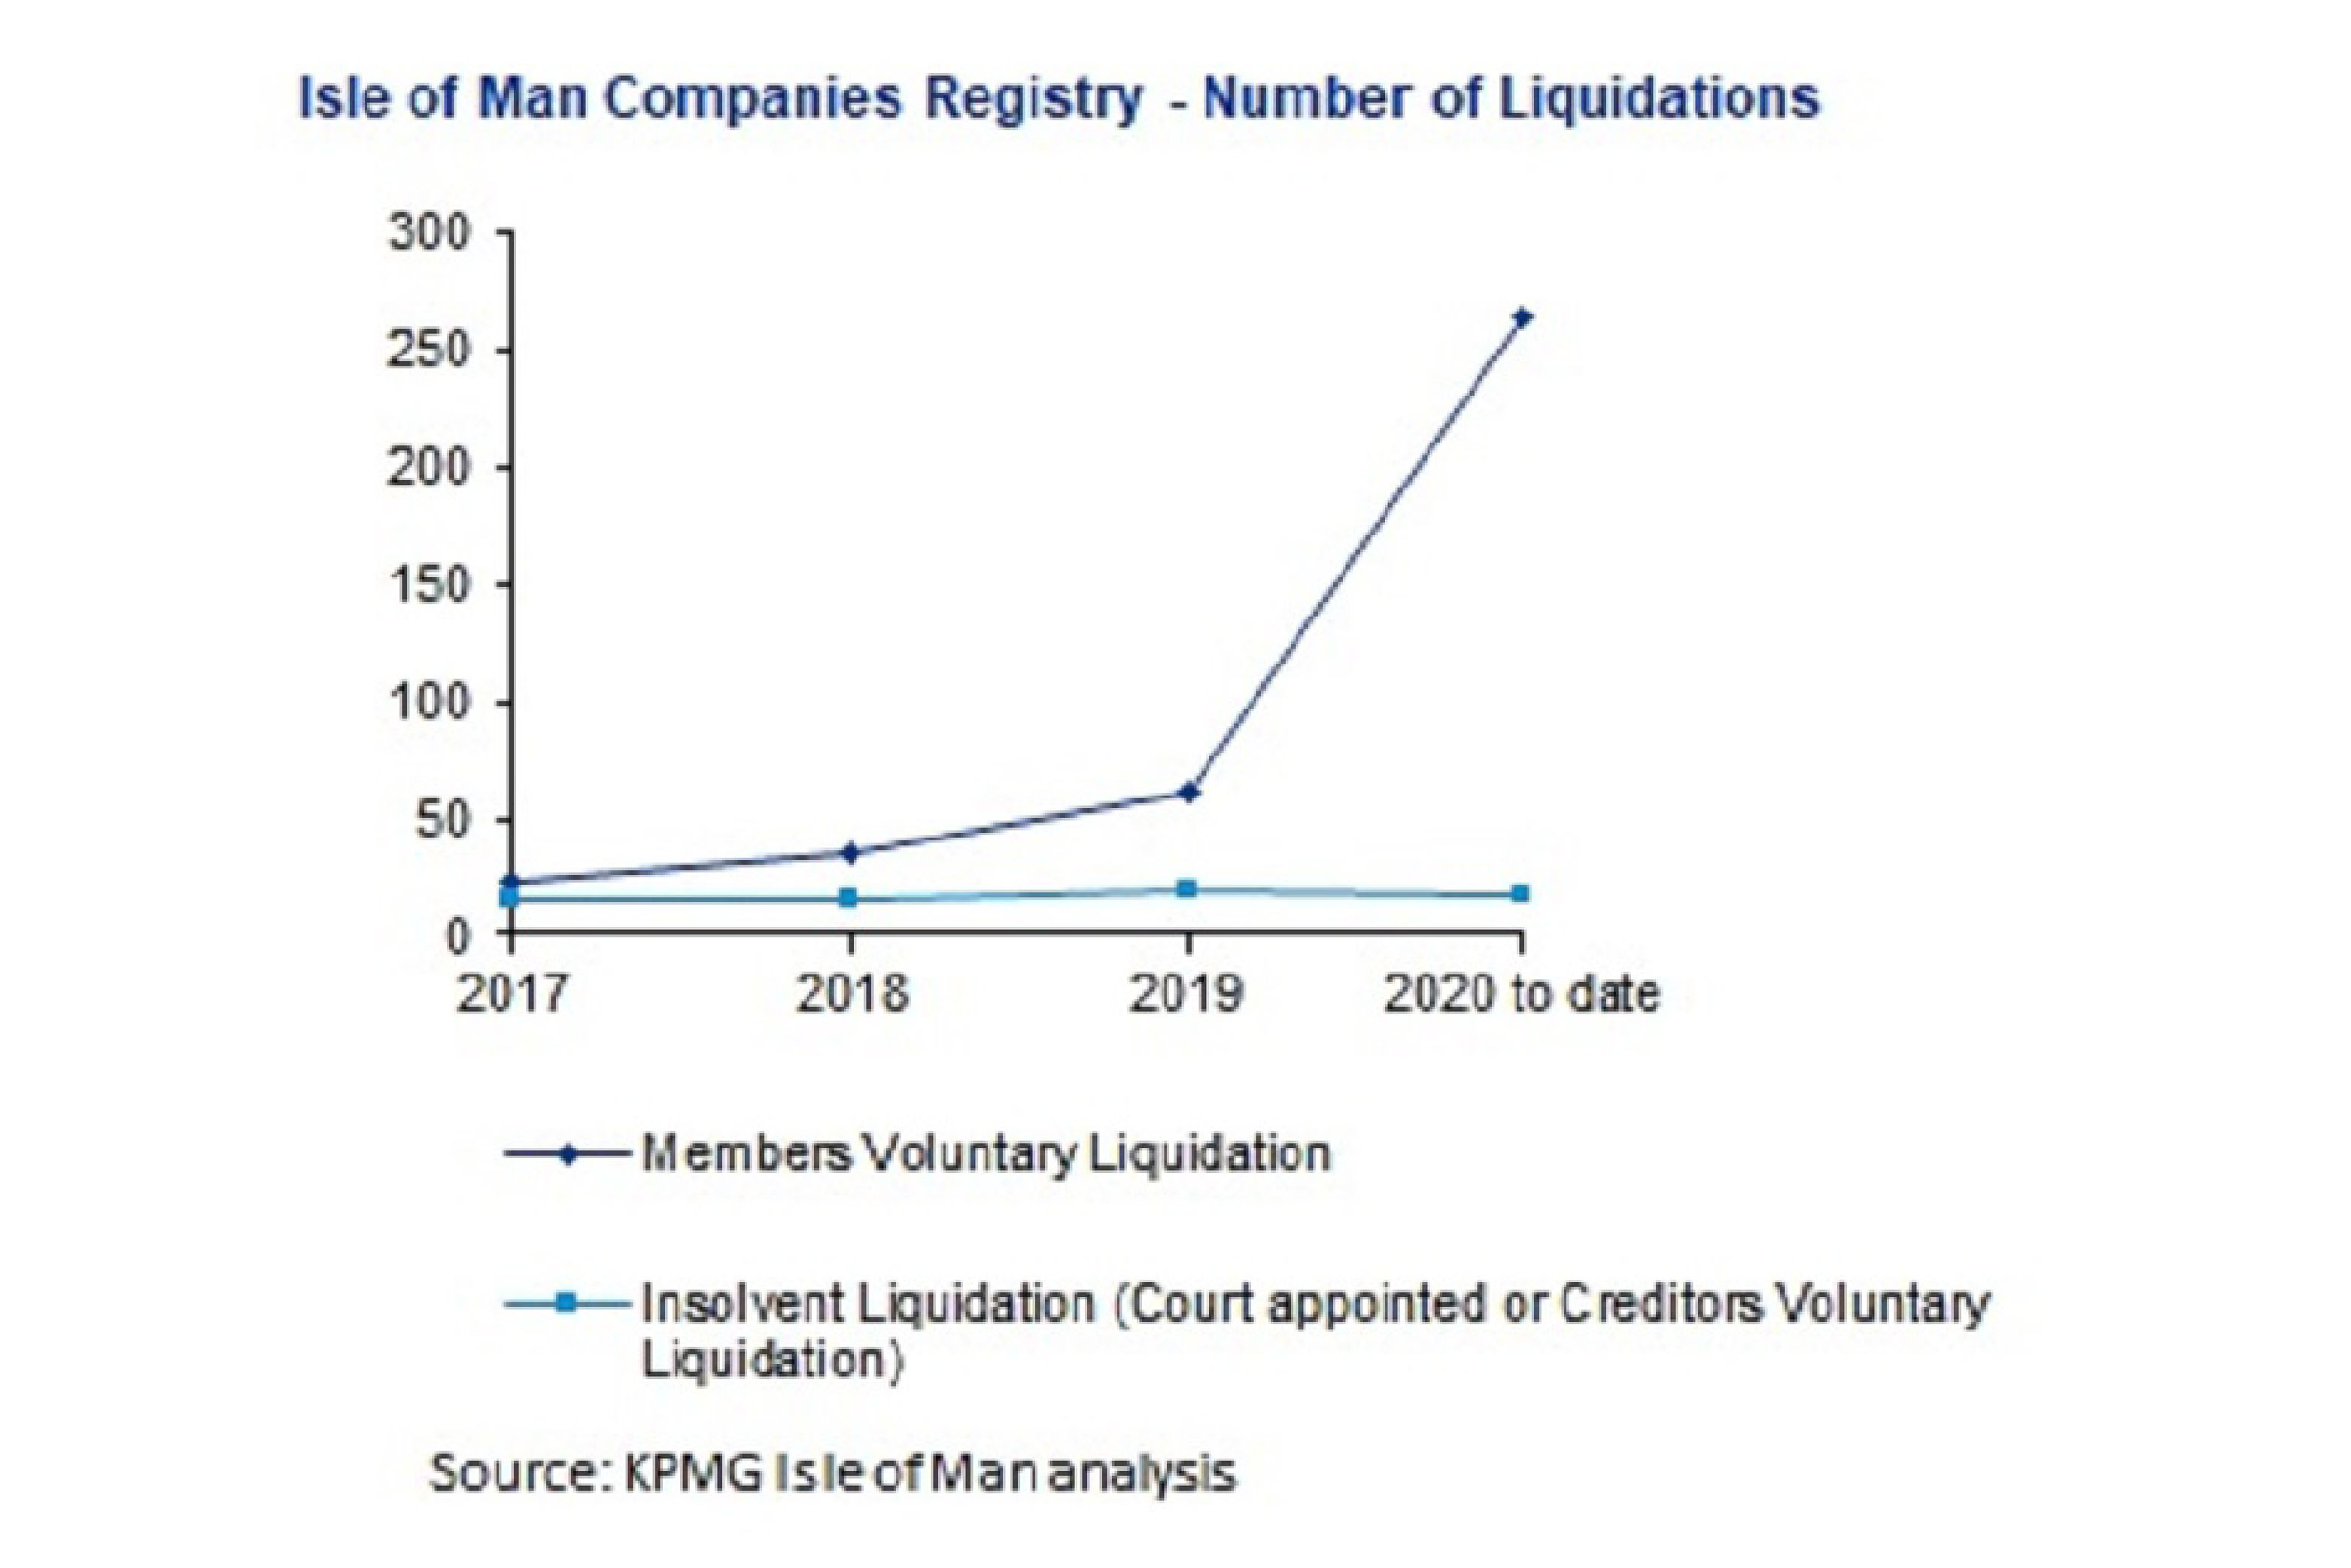 Isle of Man Companies Registry - Number of Liquidations